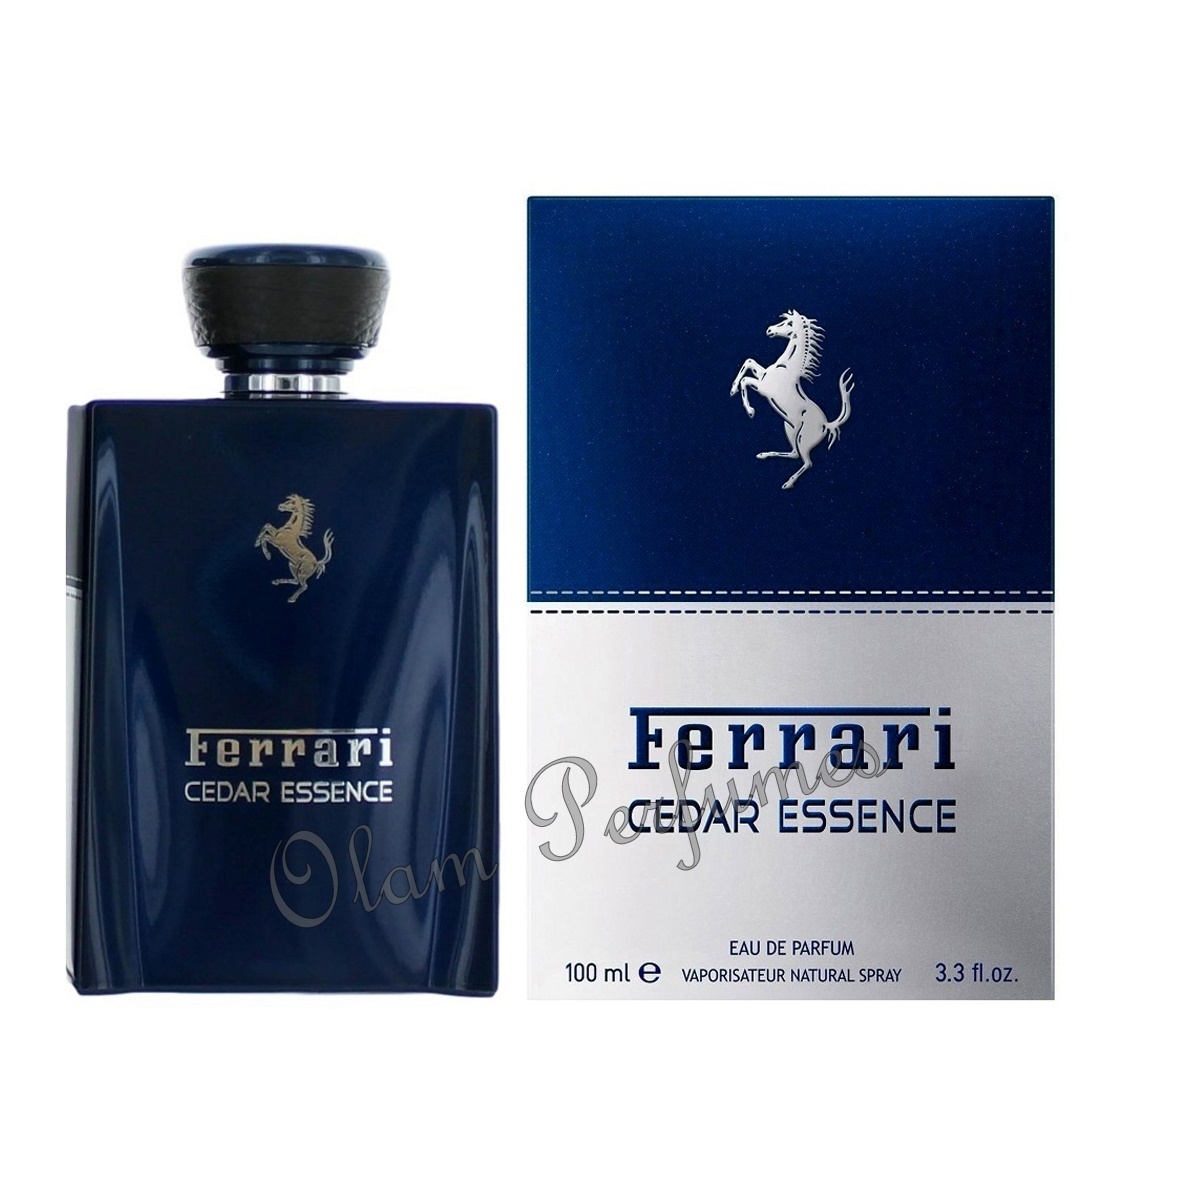 Ferrari Cedar Essence Eau de Parfum Spray 3.3oz 100ml